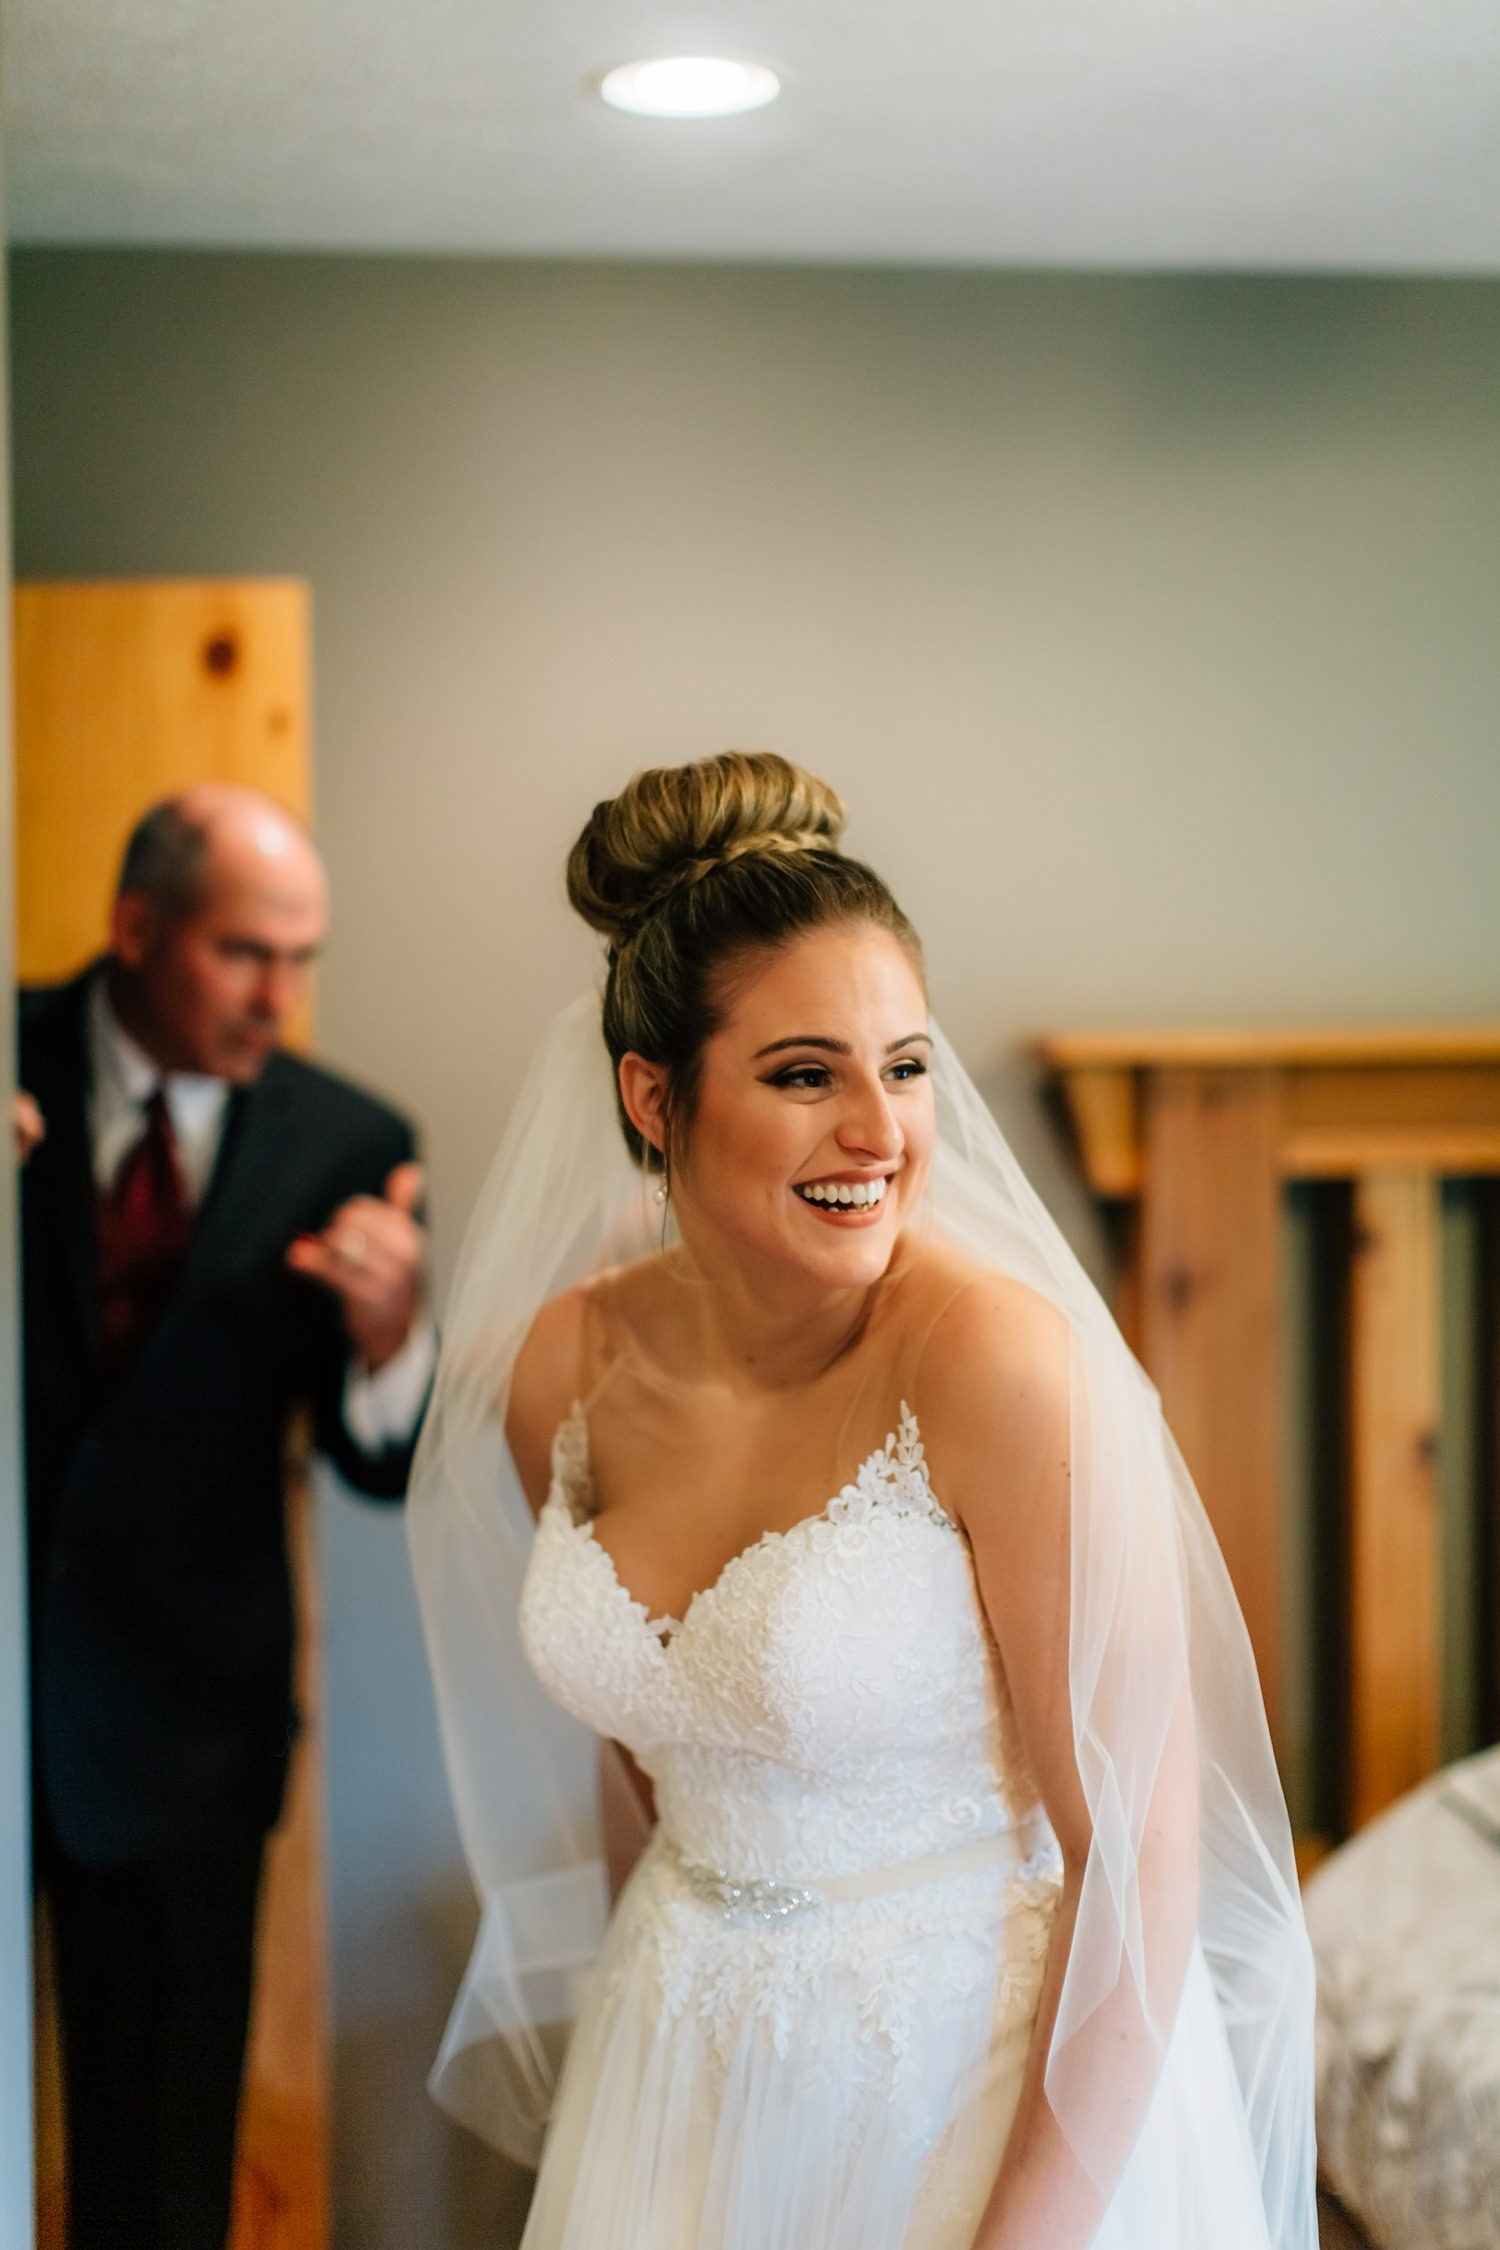 bride smiling while getting ready in wedding dress before backyard ceremony